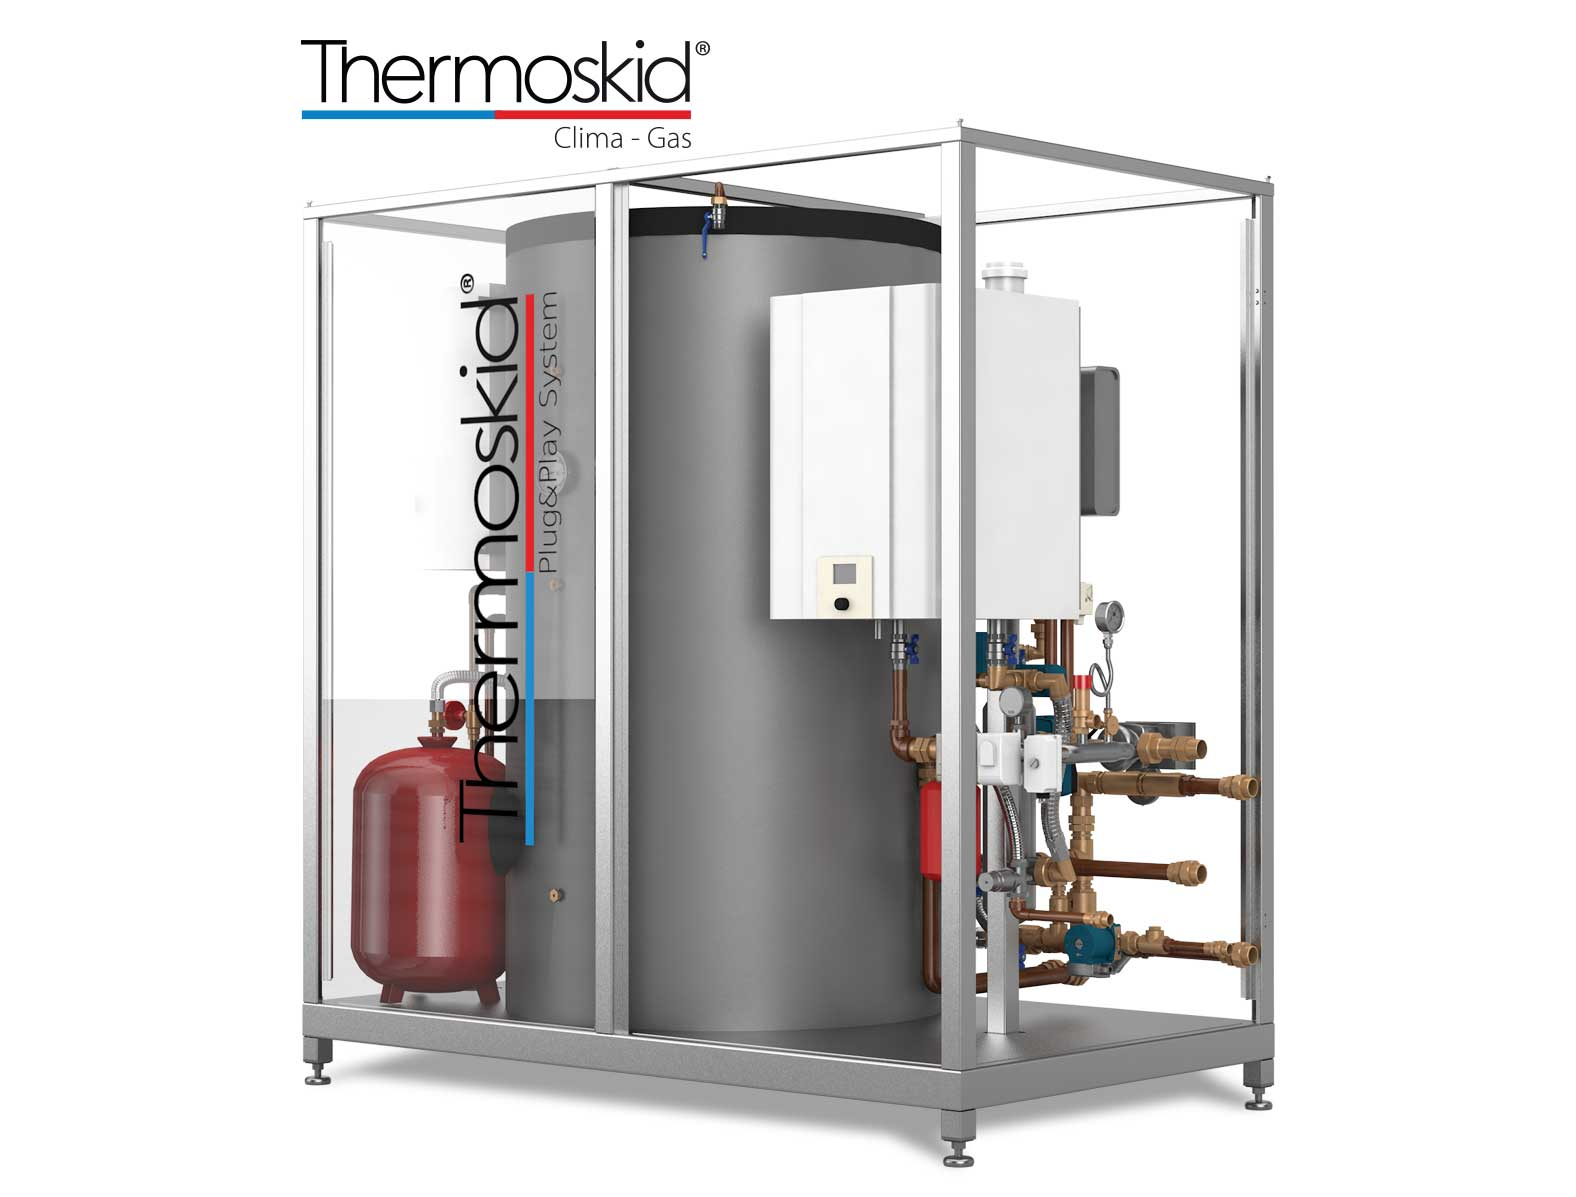 thermoskid-clima-gas